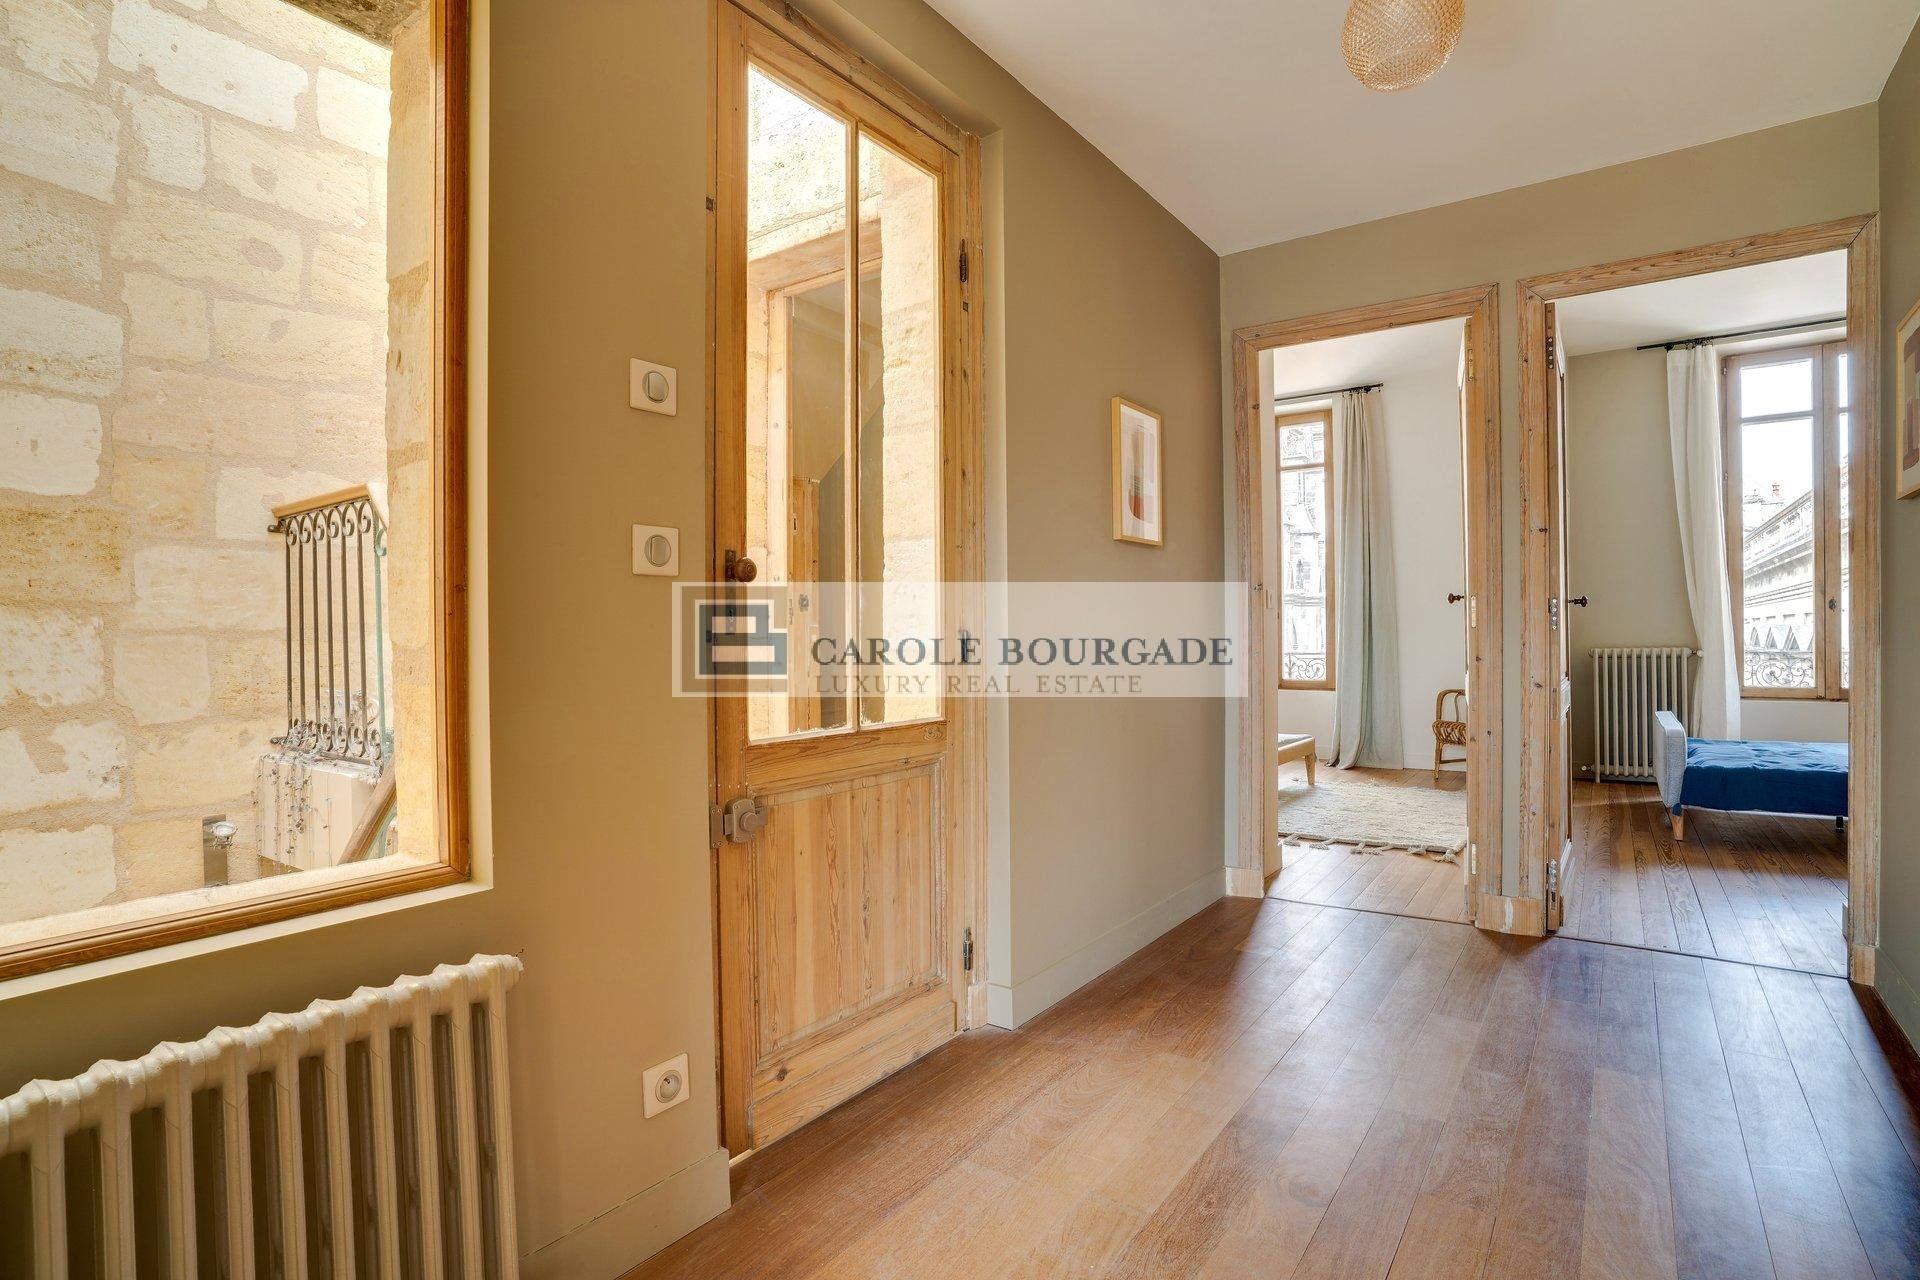 VERY NICE TOWN HOUSE WITH TERRACES IN THE HEART OF CHARTRONS IN BORDEAUX